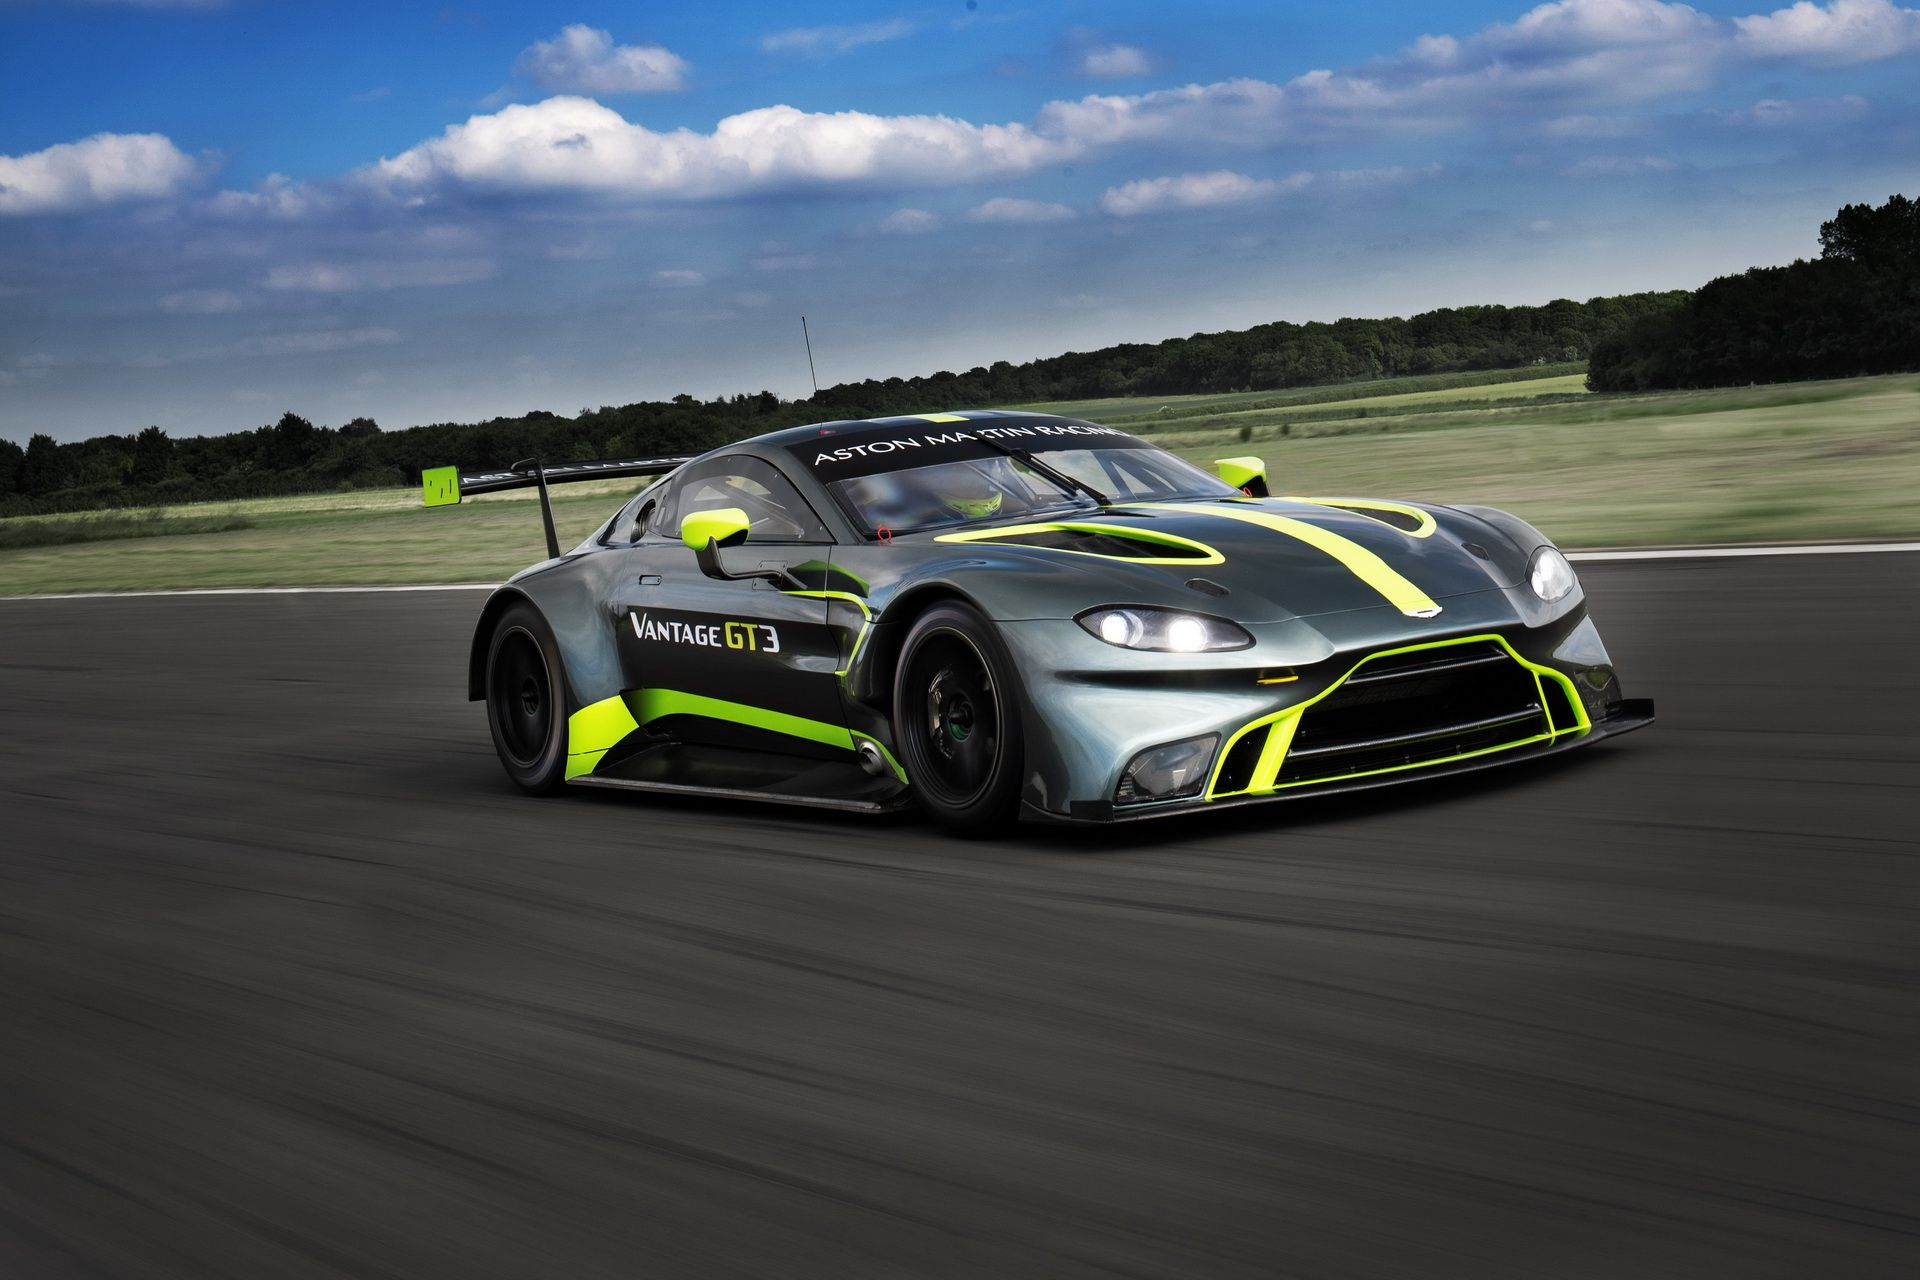 aston martin reveal the new vantage gt3 and gt4 race cars. Black Bedroom Furniture Sets. Home Design Ideas